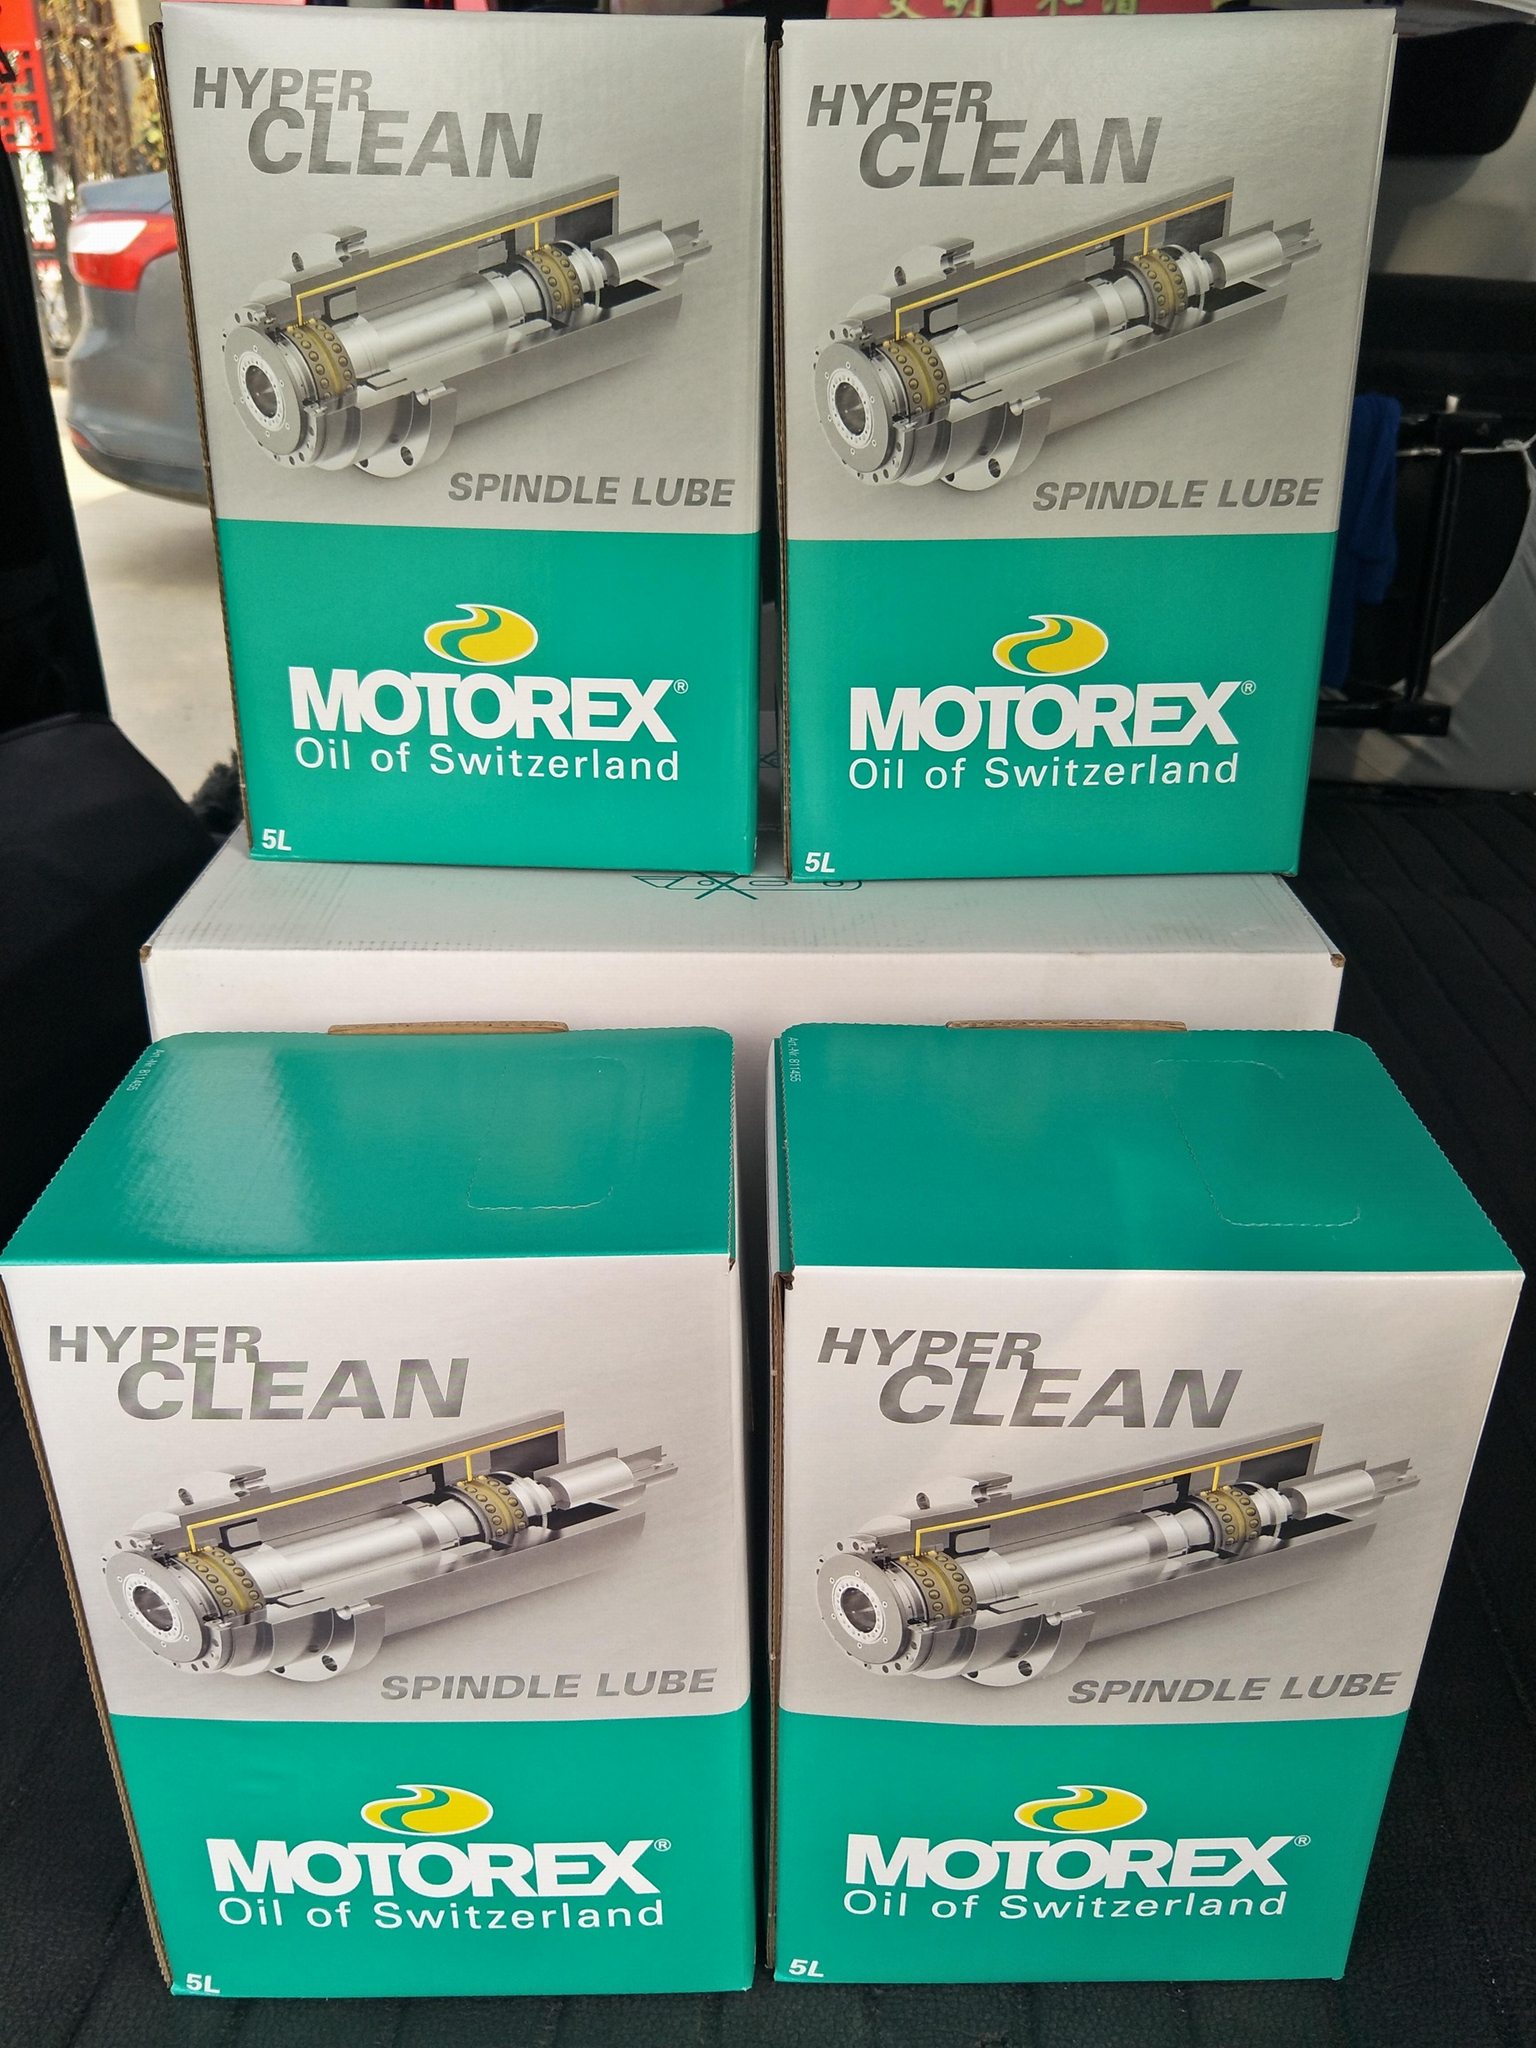 MOTOREX主轴润滑油VG68丨MOTOREX SPINDLE LUBE ISO VG68